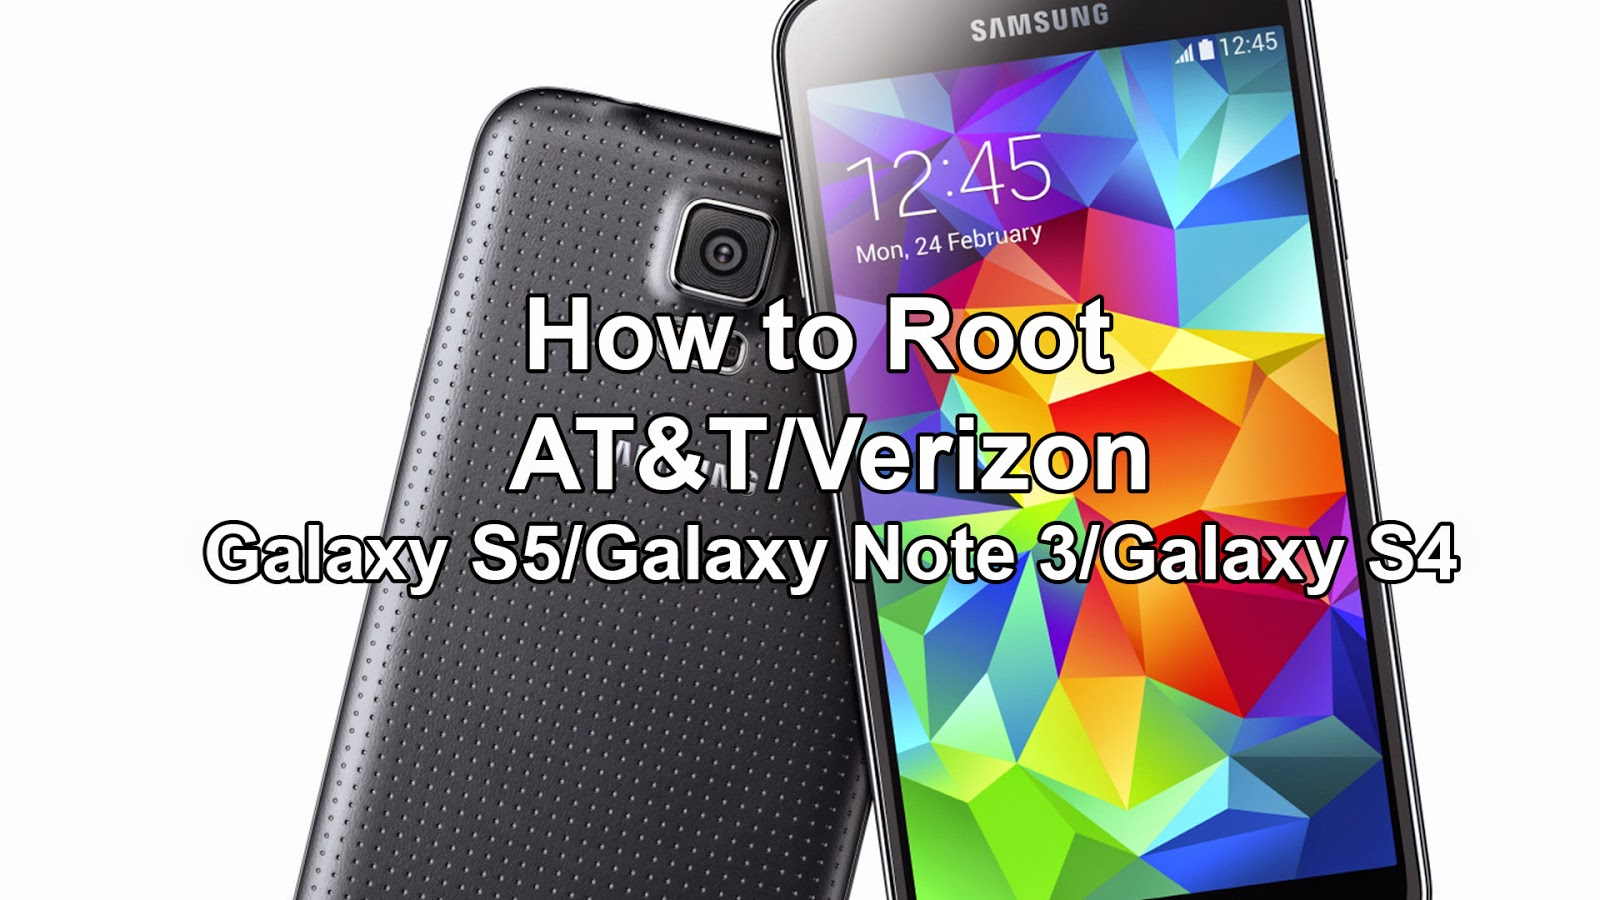 How to Root AT&T/Verizon Galaxy S5, Note 3, Galaxy S4 & Galaxy S4